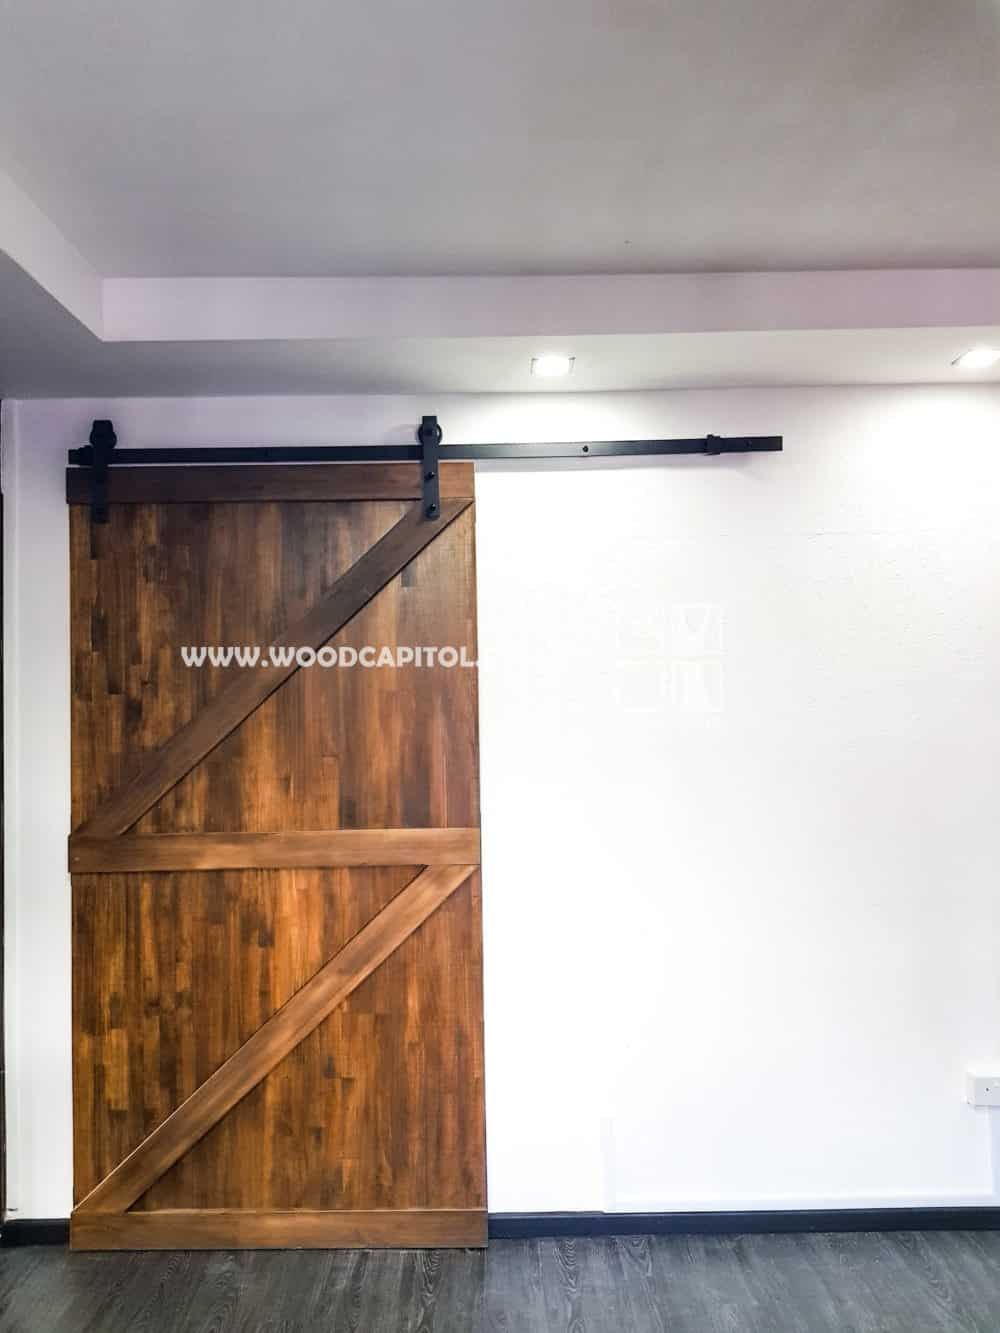 Wood Capitol Double Z Brace Sliding Barn Door